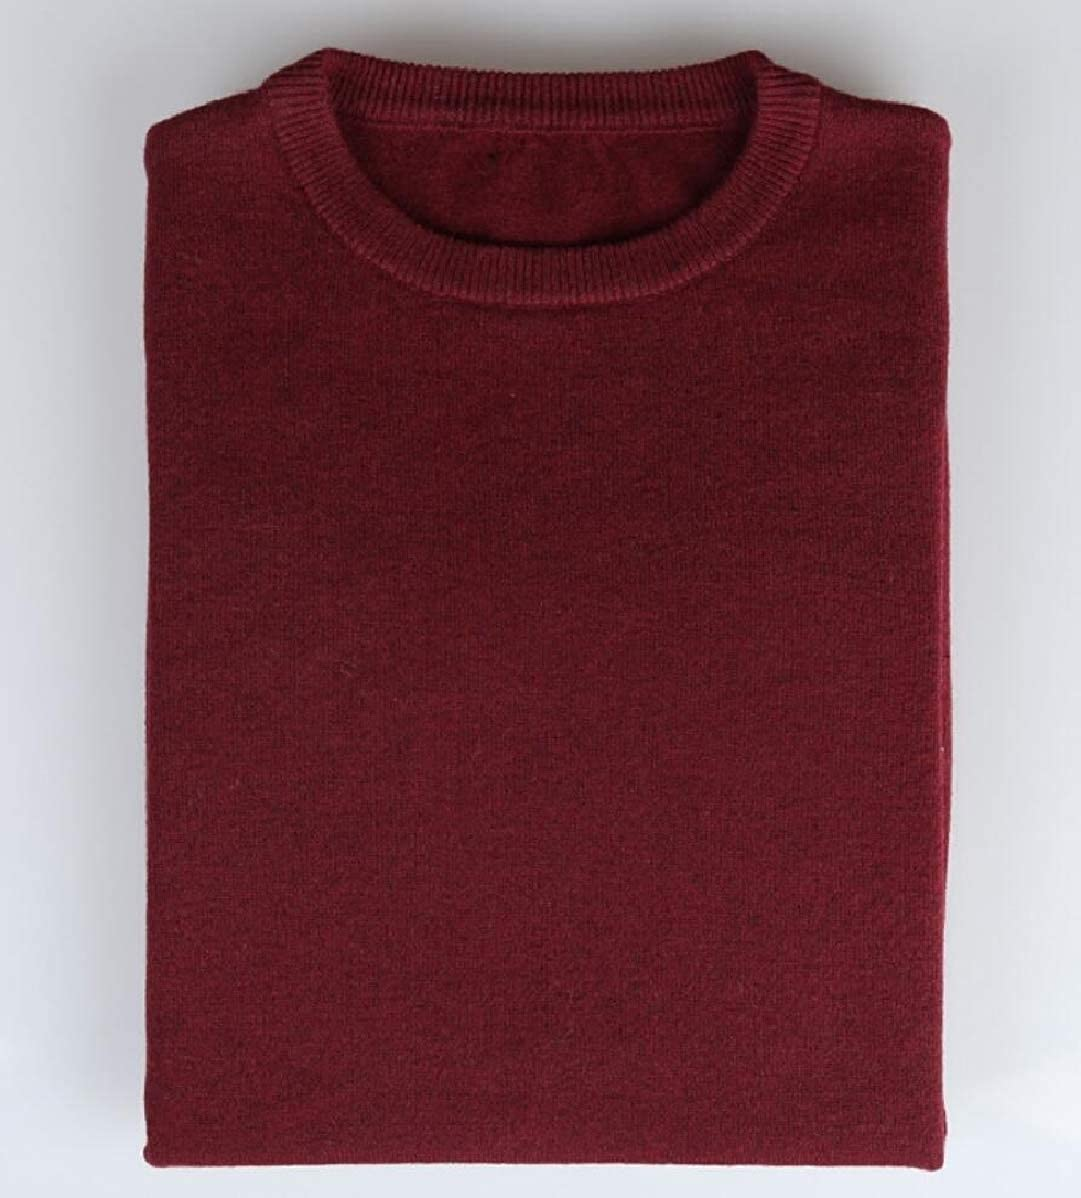 YIhujiuben Mens Round Neck Solid Color Lightweight Knitted Pullover Sweaters